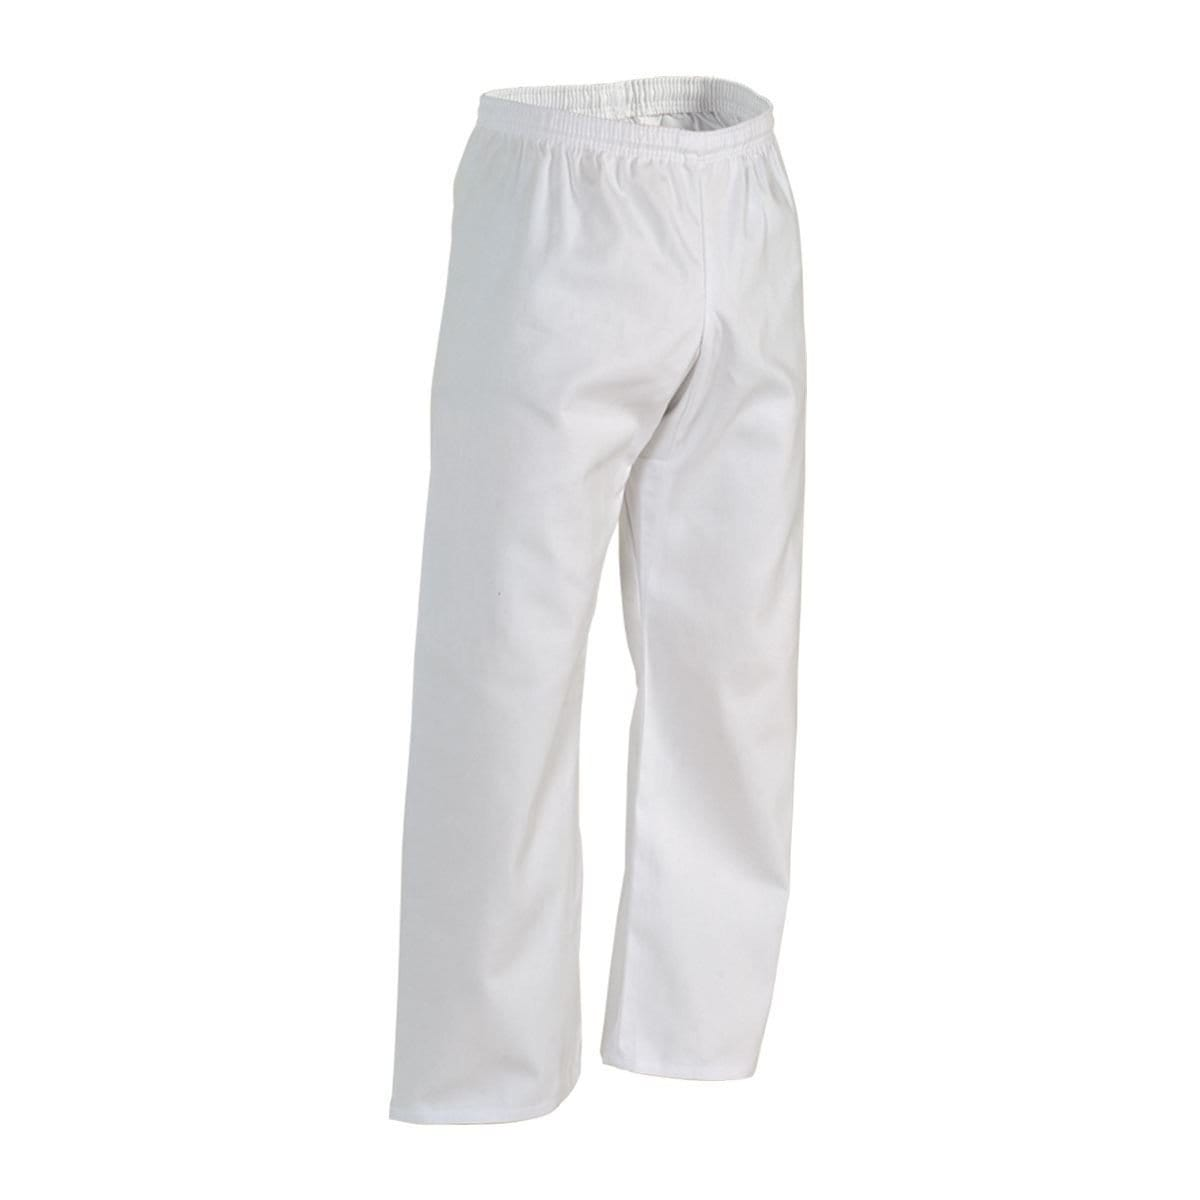 white Century Middleweight Student Elastic Waist  PANTS